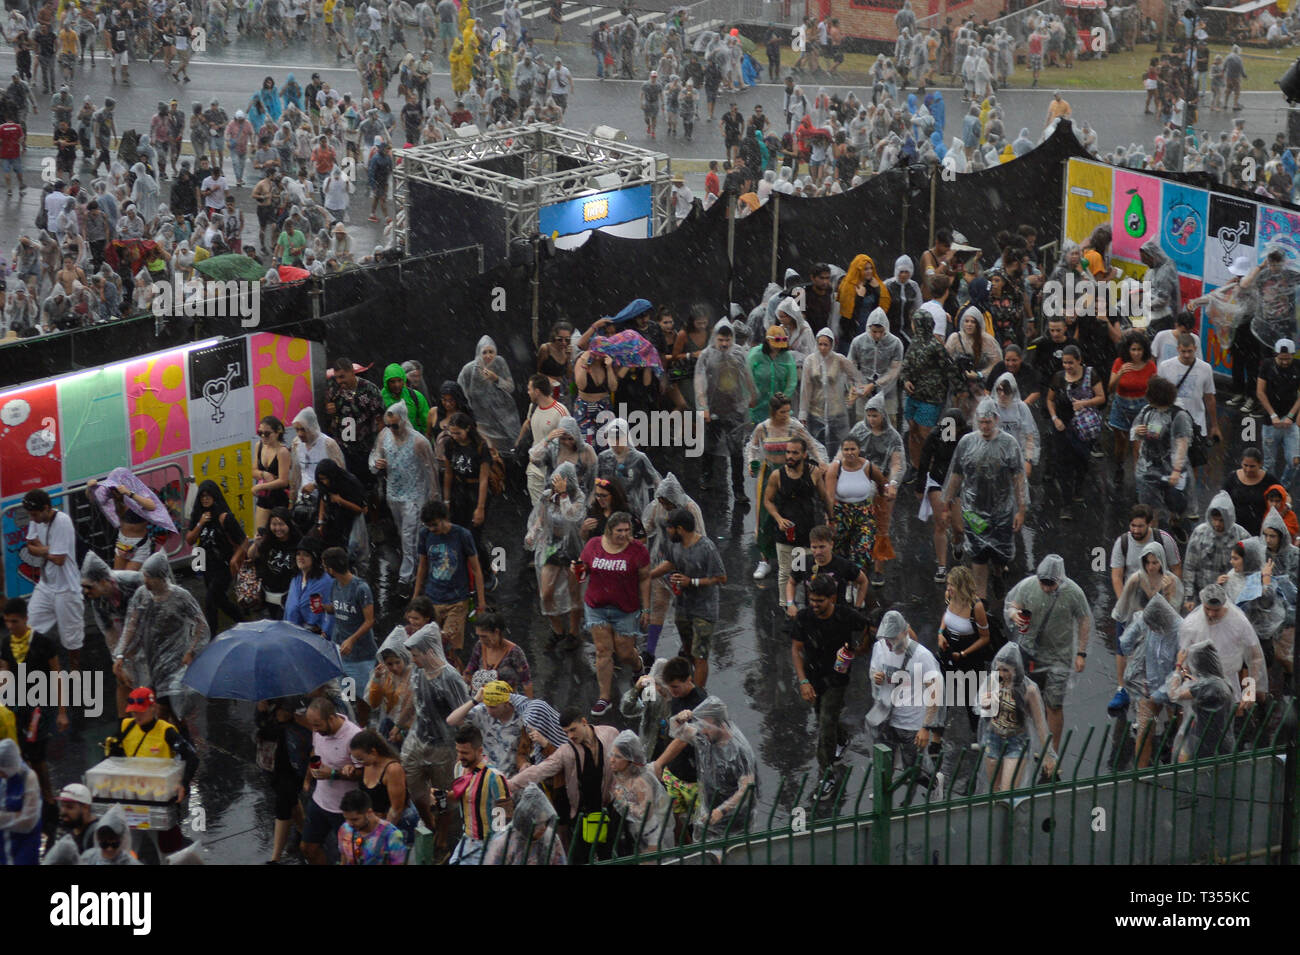 Sao Paulo, Brazil. 06th Apr, 2019. Lollapalooza 2019 Festival is interrupted and stages are cleared due to strong wind, rain rainfall possibility, held at the Autodromo de Interlagos in São Paulo this Saturday, 06. Credit: Brazil Photo Press/Alamy Live News - Stock Image